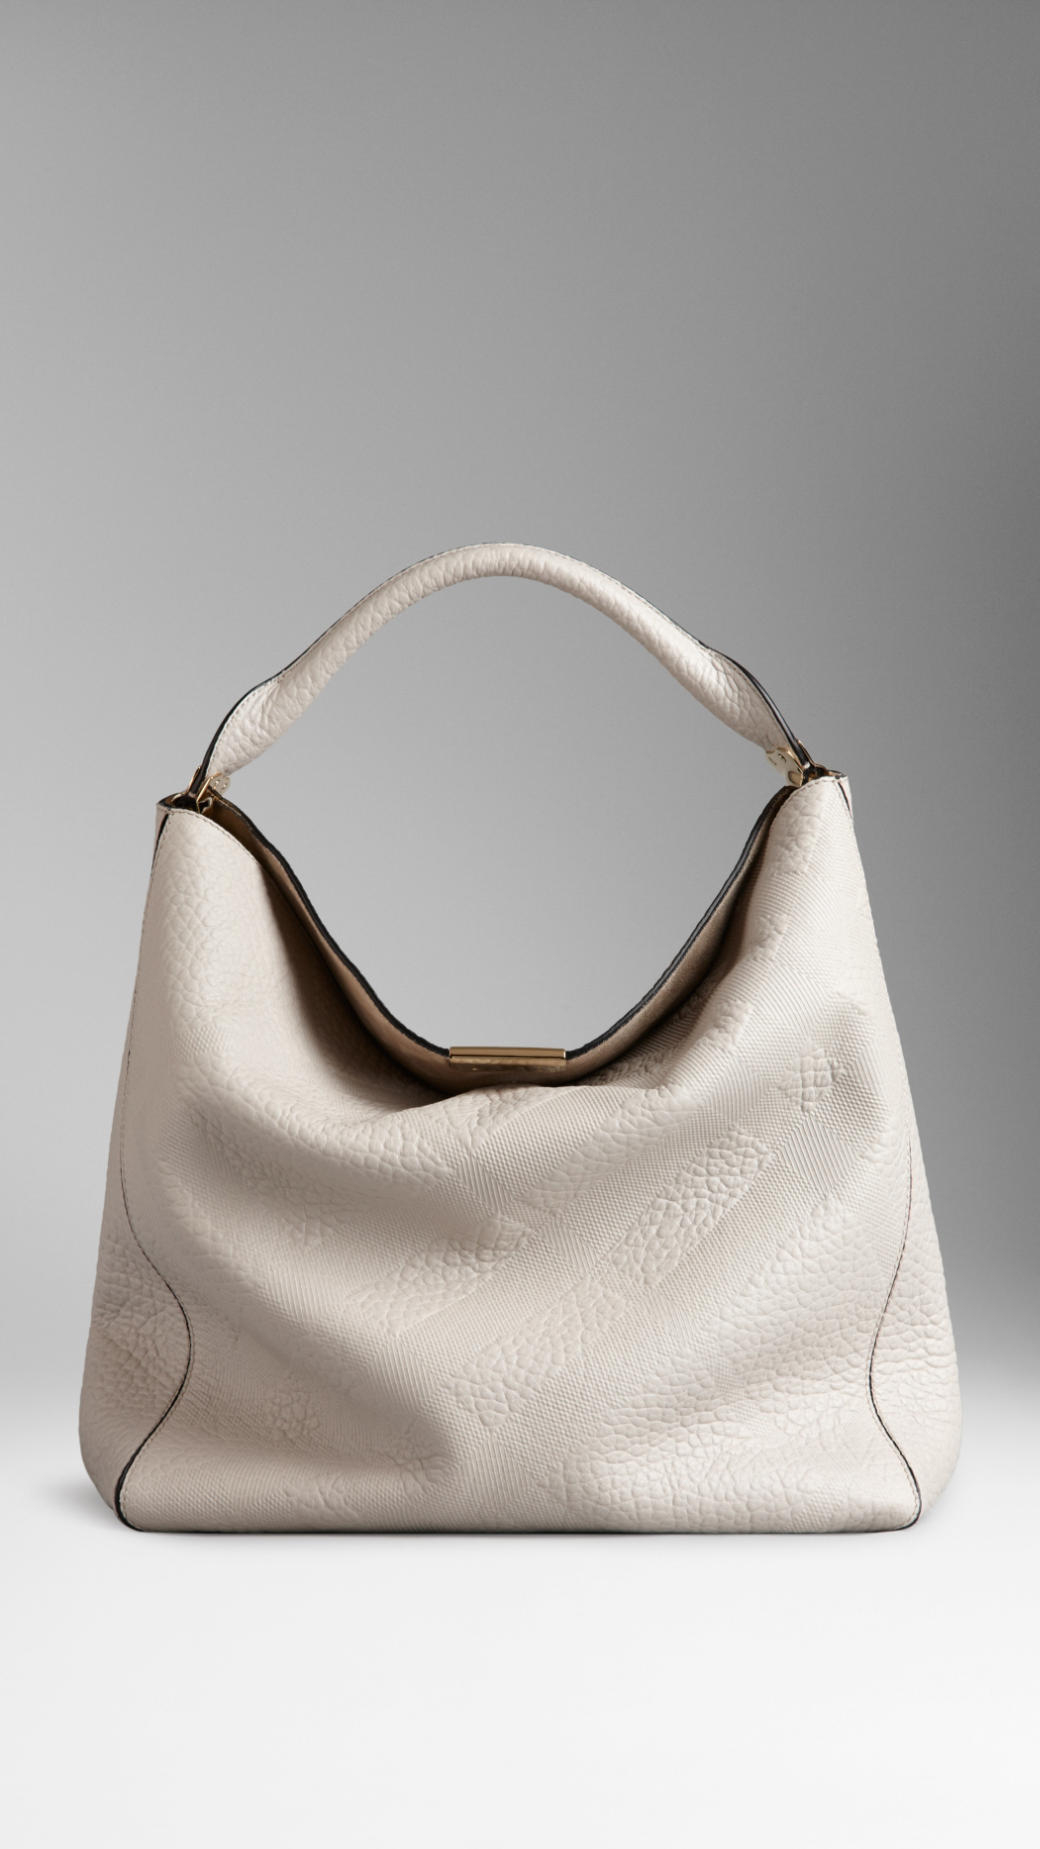 Burberry Embossed Handbag